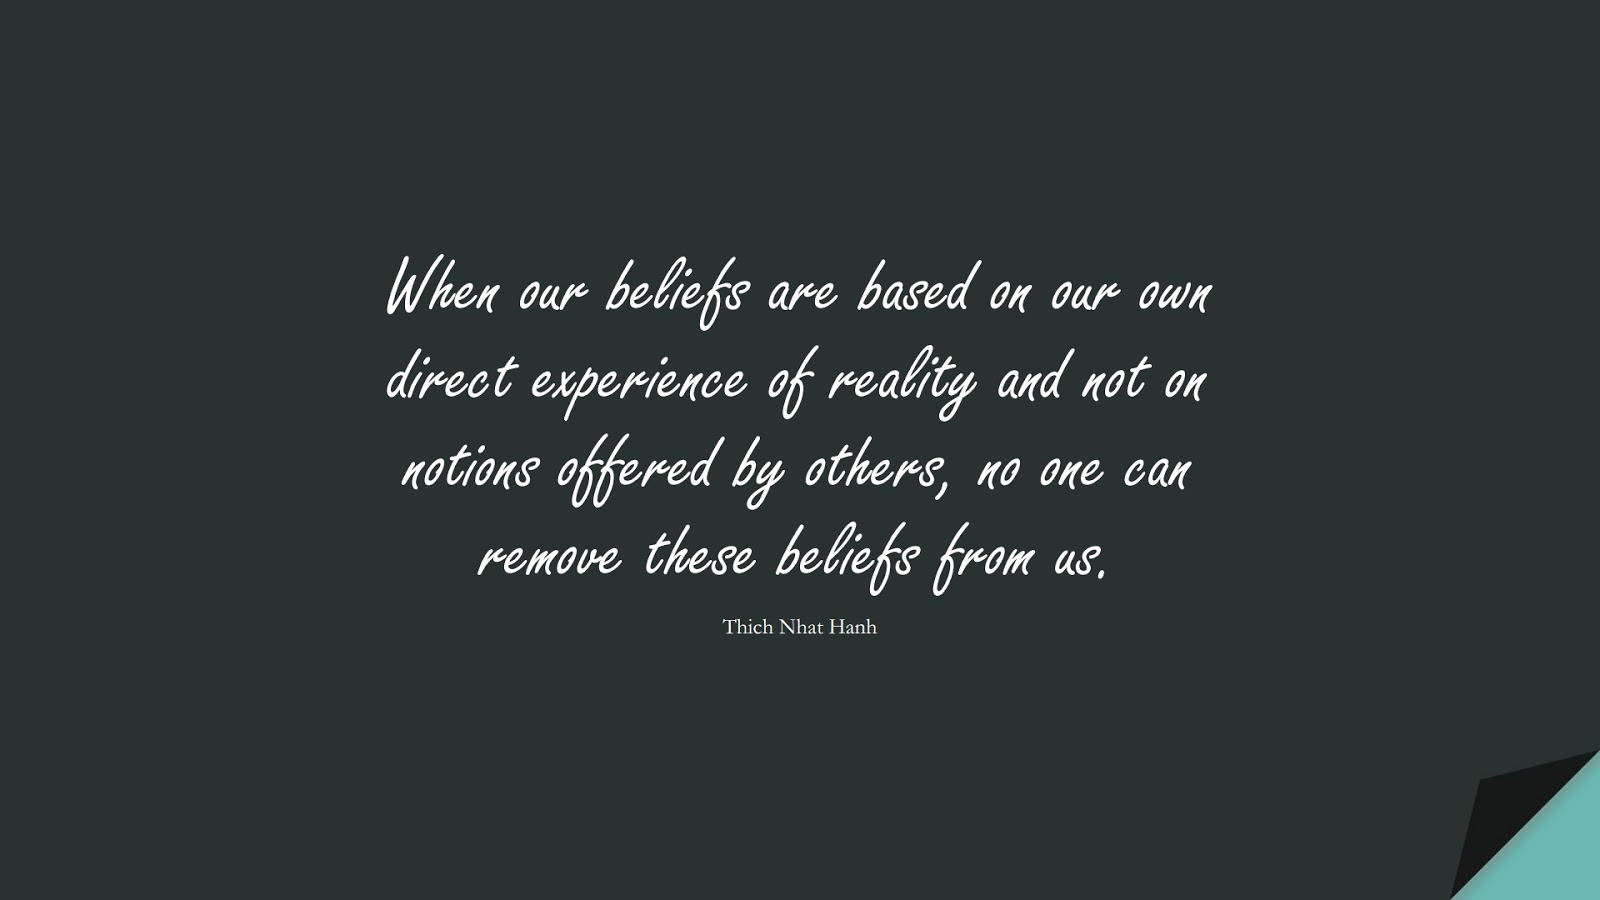 When our beliefs are based on our own direct experience of reality and not on notions offered by others, no one can remove these beliefs from us. (Thich Nhat Hanh);  #SelfEsteemQuotes